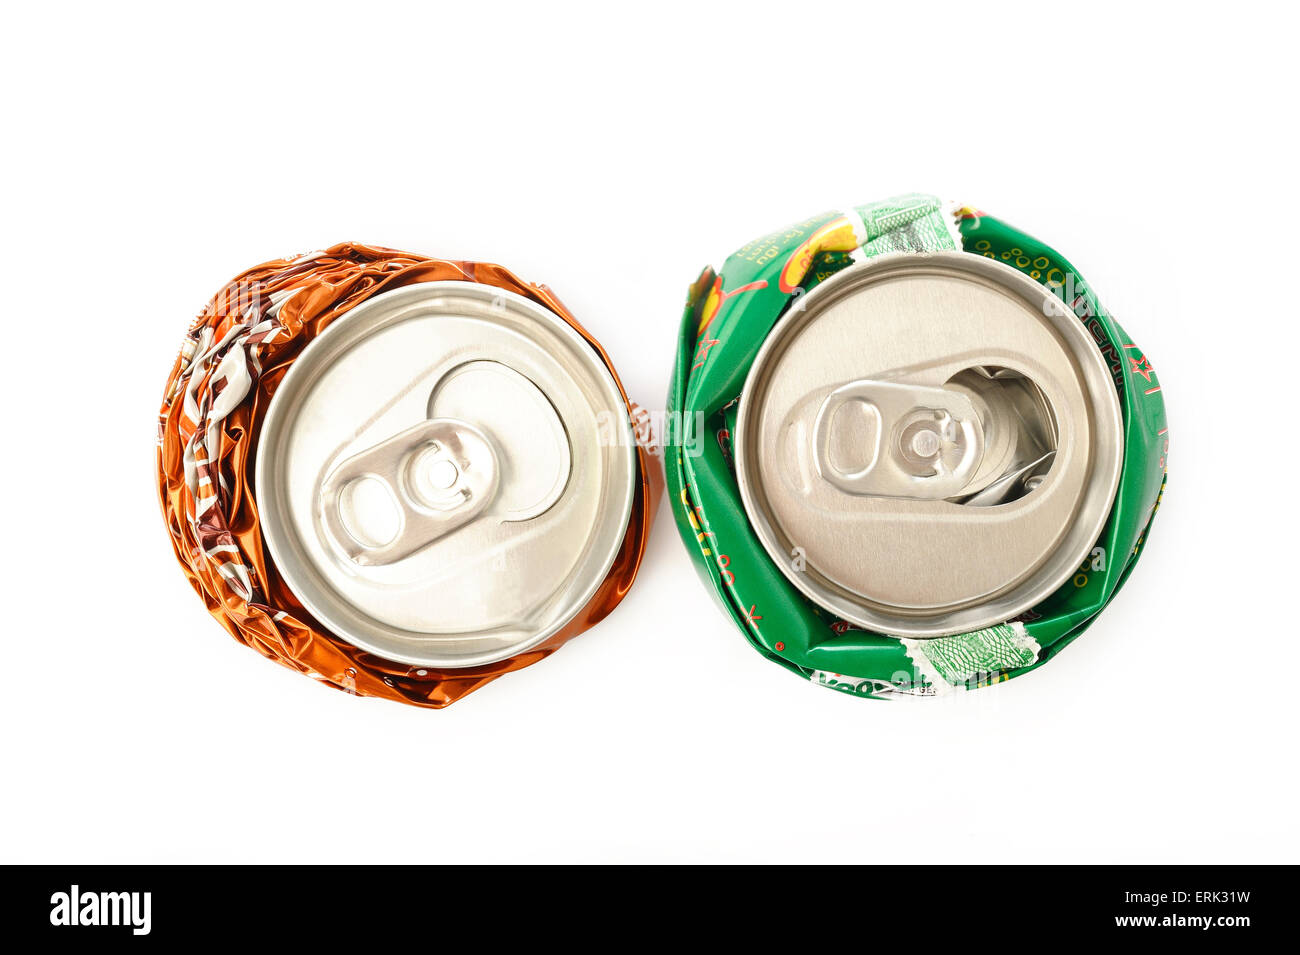 recycle aluminum cans on white background - Stock Image